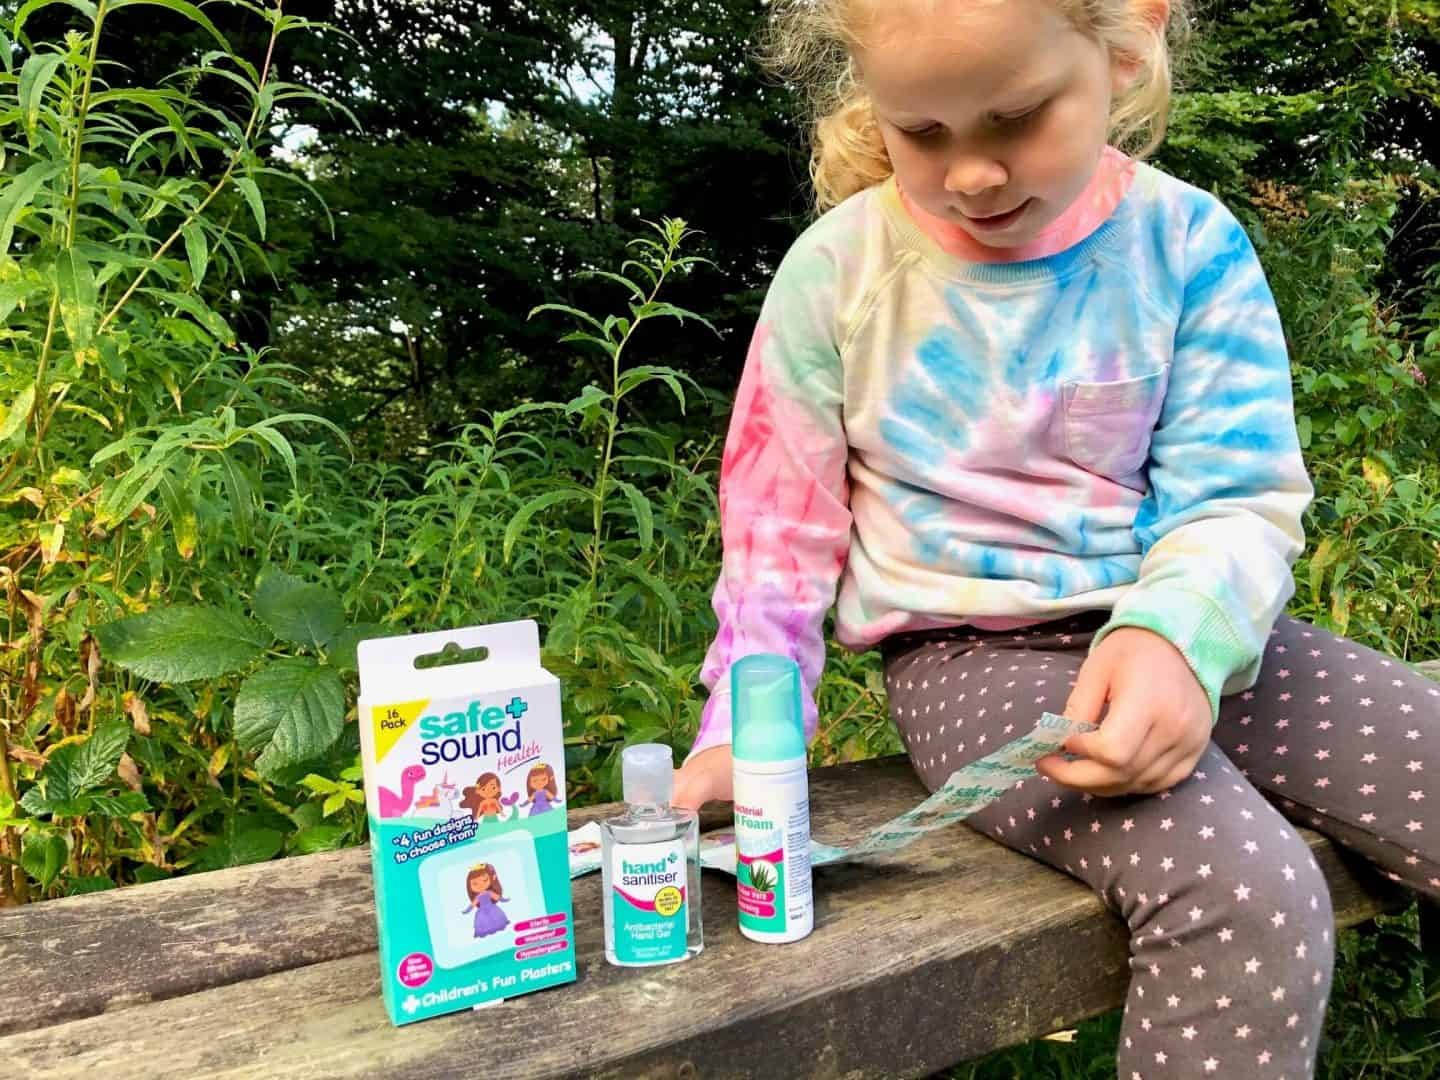 L-in-the-woods-with-the-Safe-and-Sound-Health-products-for-the-First-Aid-Kit